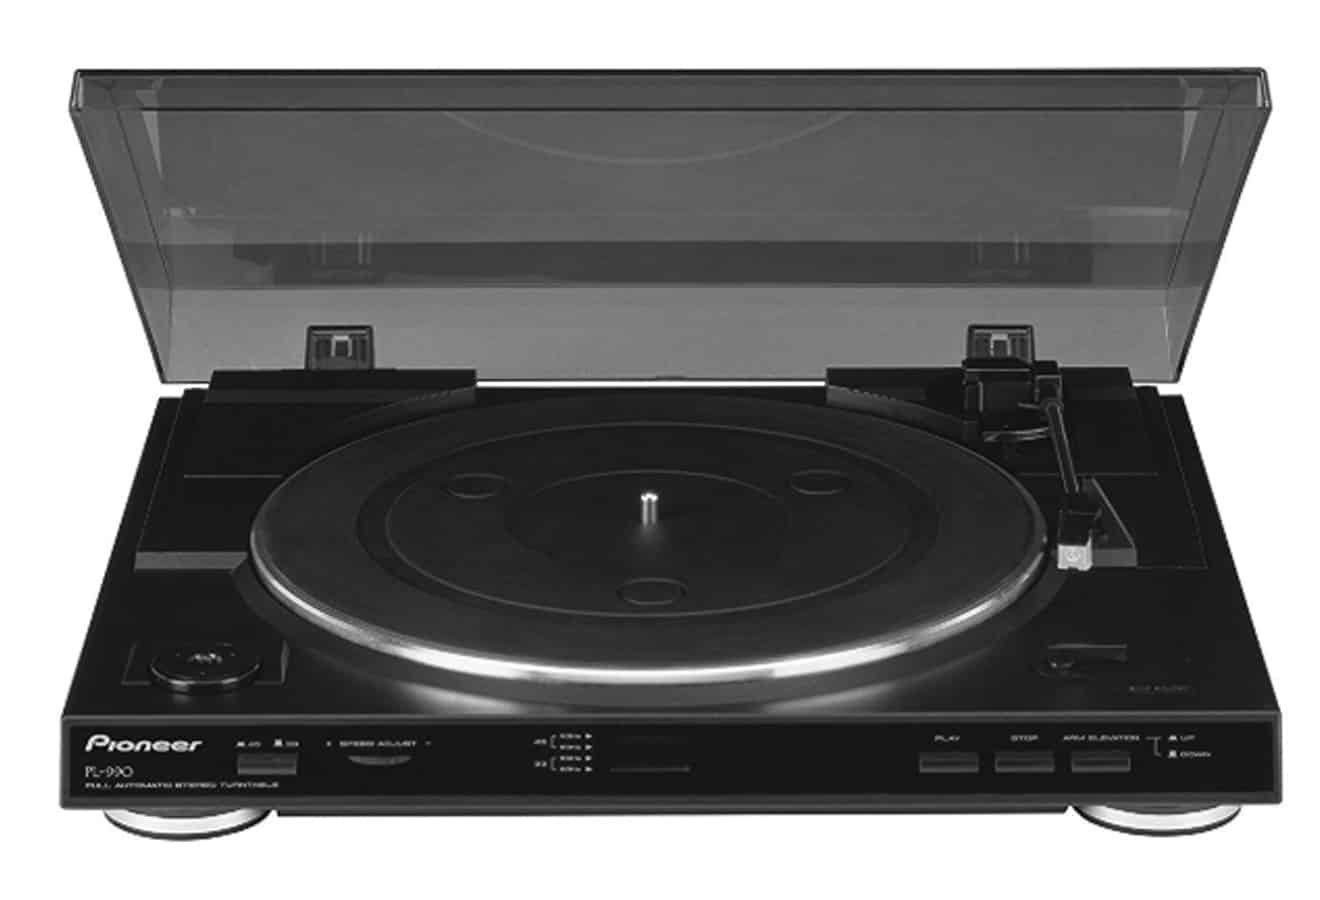 Pioneer PL -990 Automatic stereo turntable